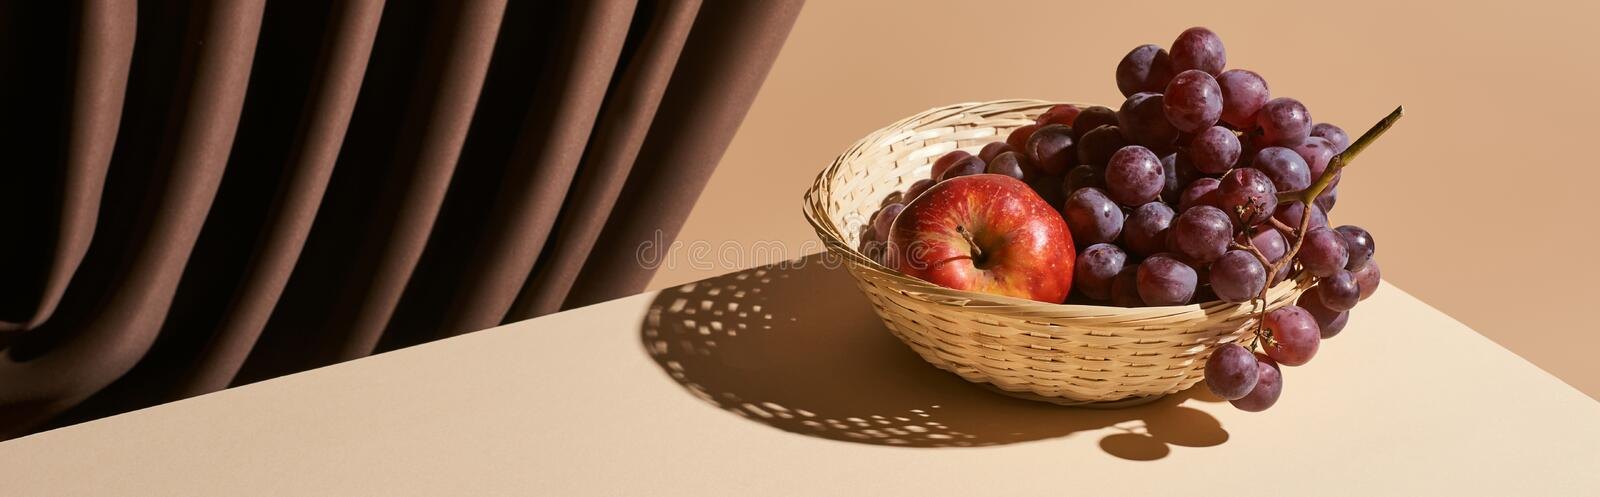 Classic still life with pomegranate and grape in wicker basket on table near curtain isolated on beige, panoramic shot. Stock photo royalty free stock photography